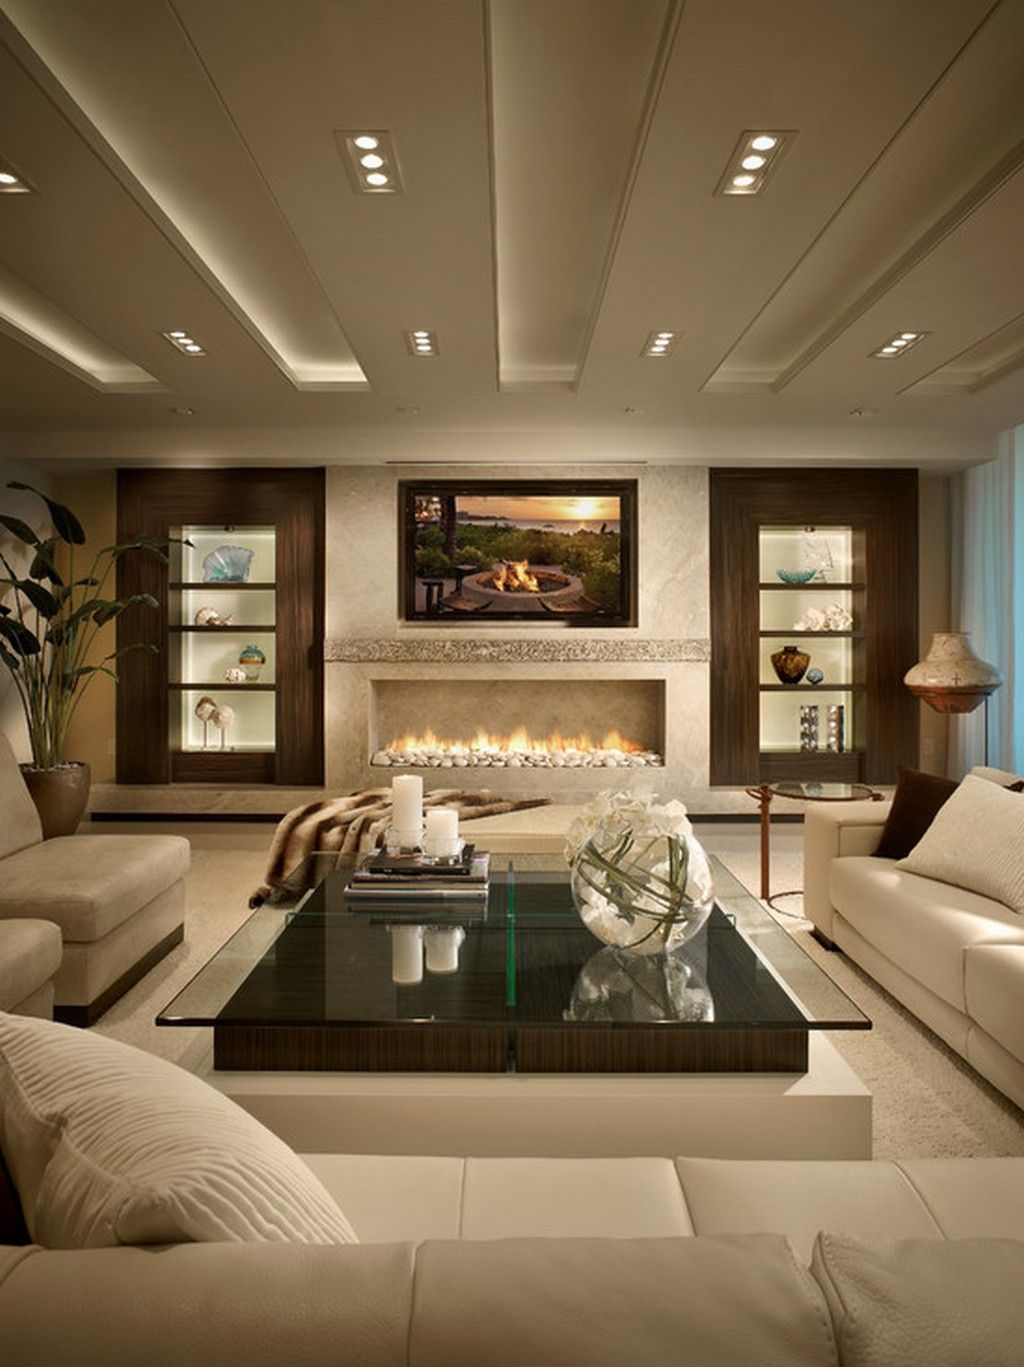 design small living room with fireplace pictures of traditional decor 20 that will warm you all winter my and ideas